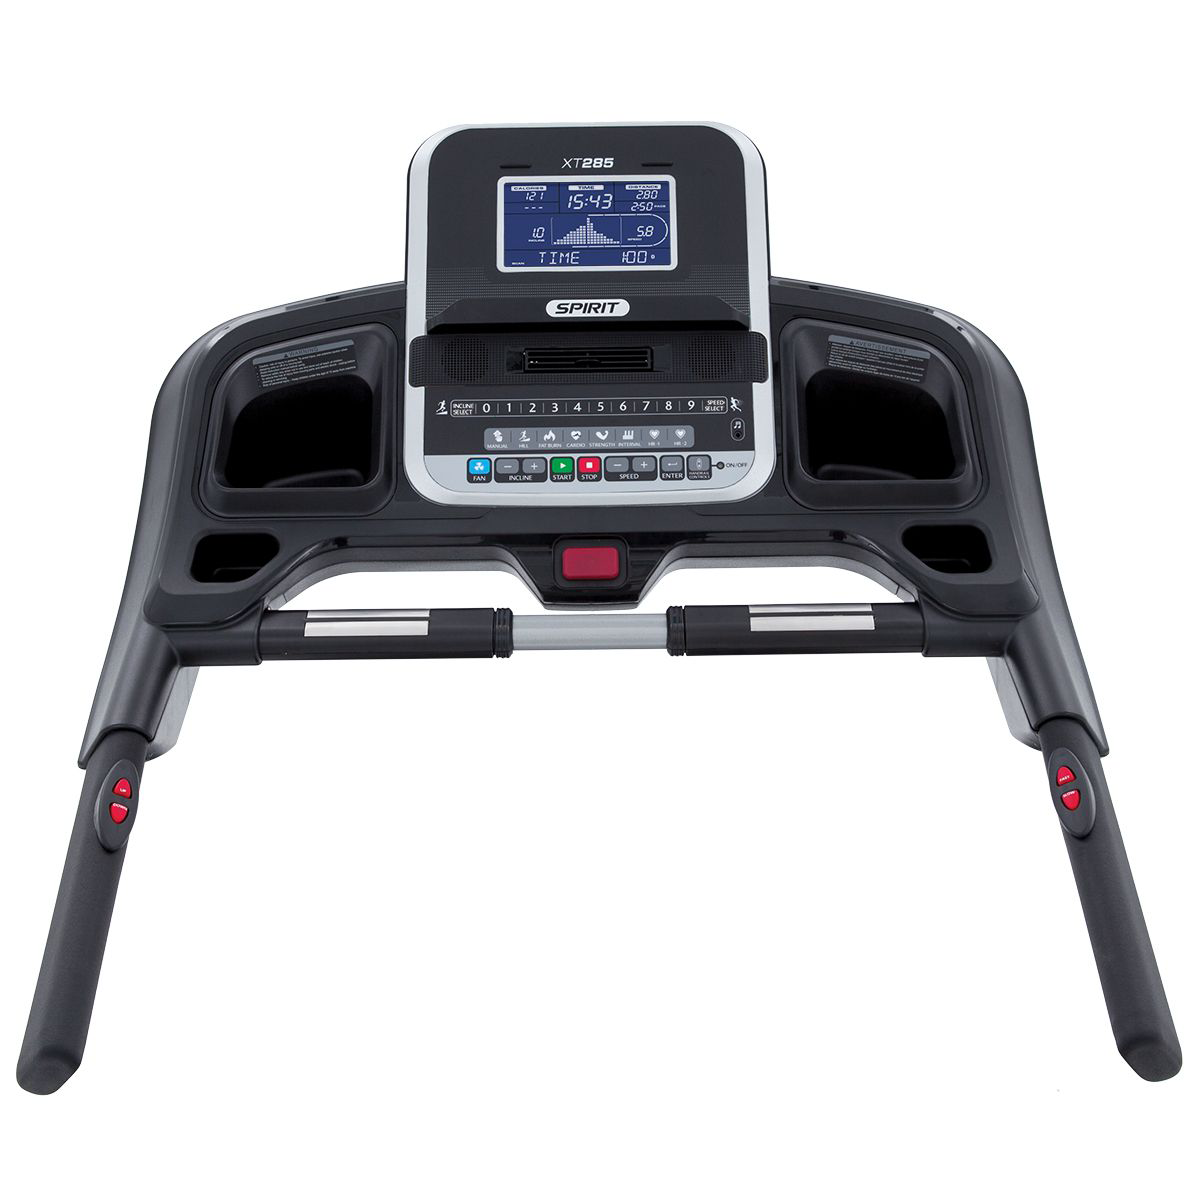 Spirit Fitness XT285 Treadmill Monitor showing blue LCD screen and control buttons.